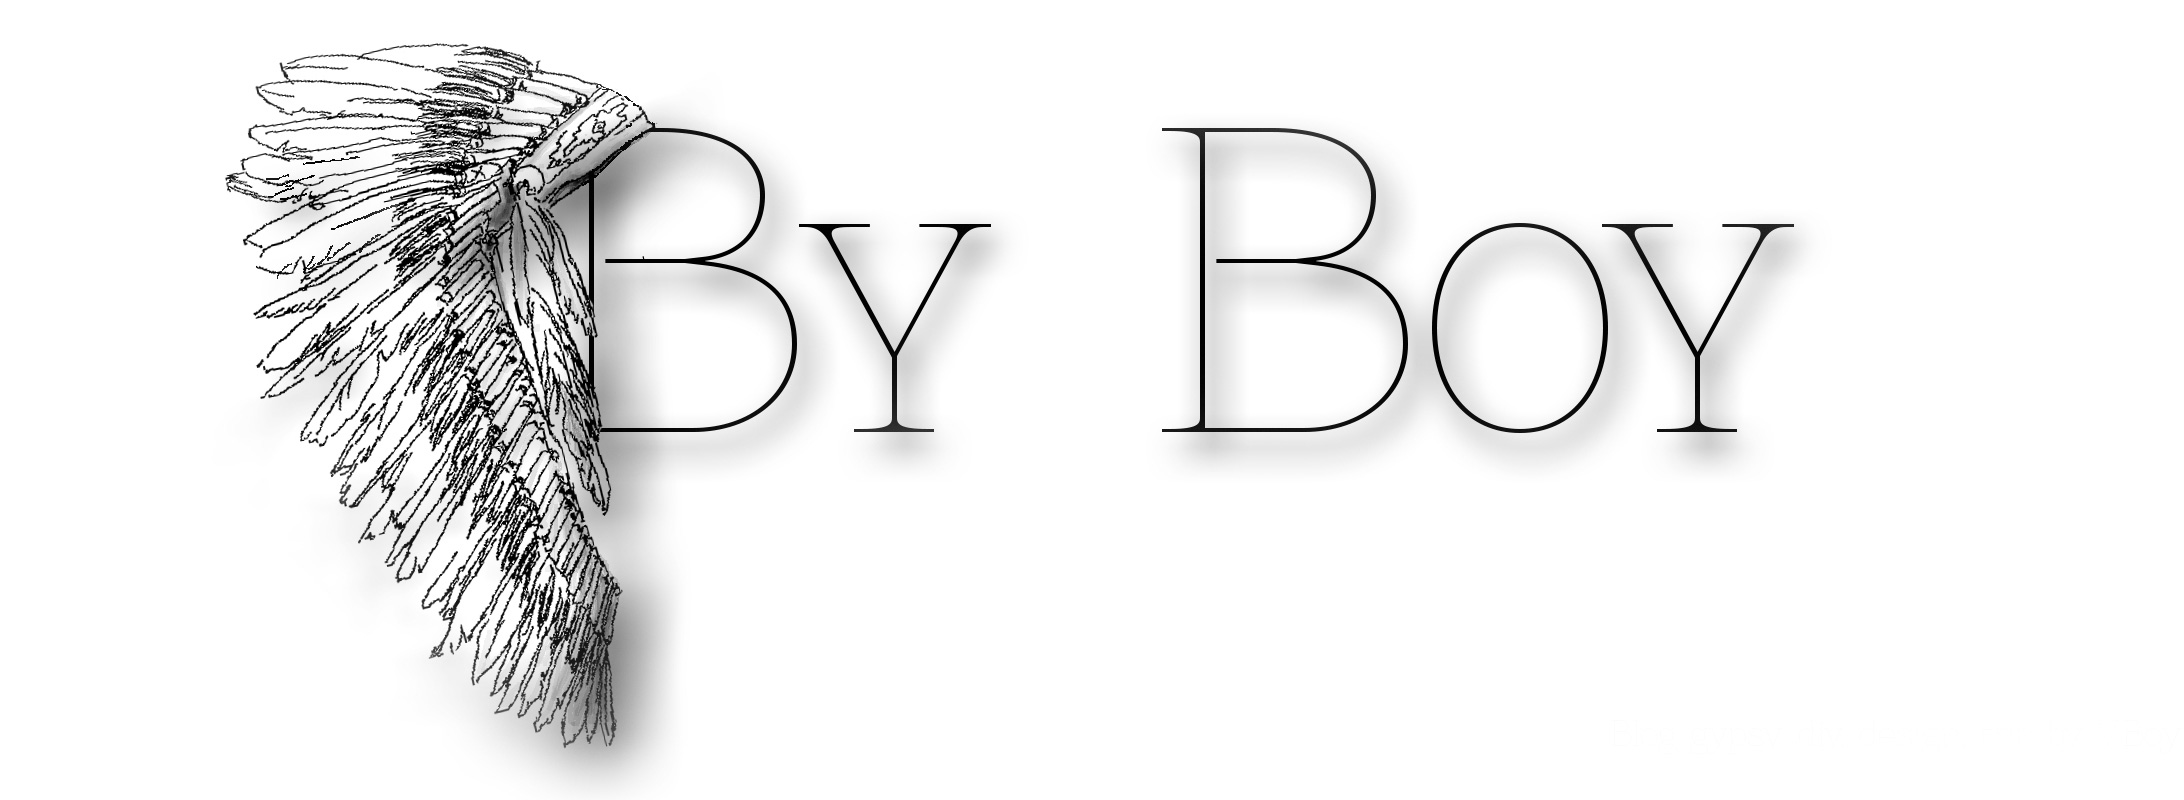 byboy-valerieboy-blog-indien-native-logo-transparent